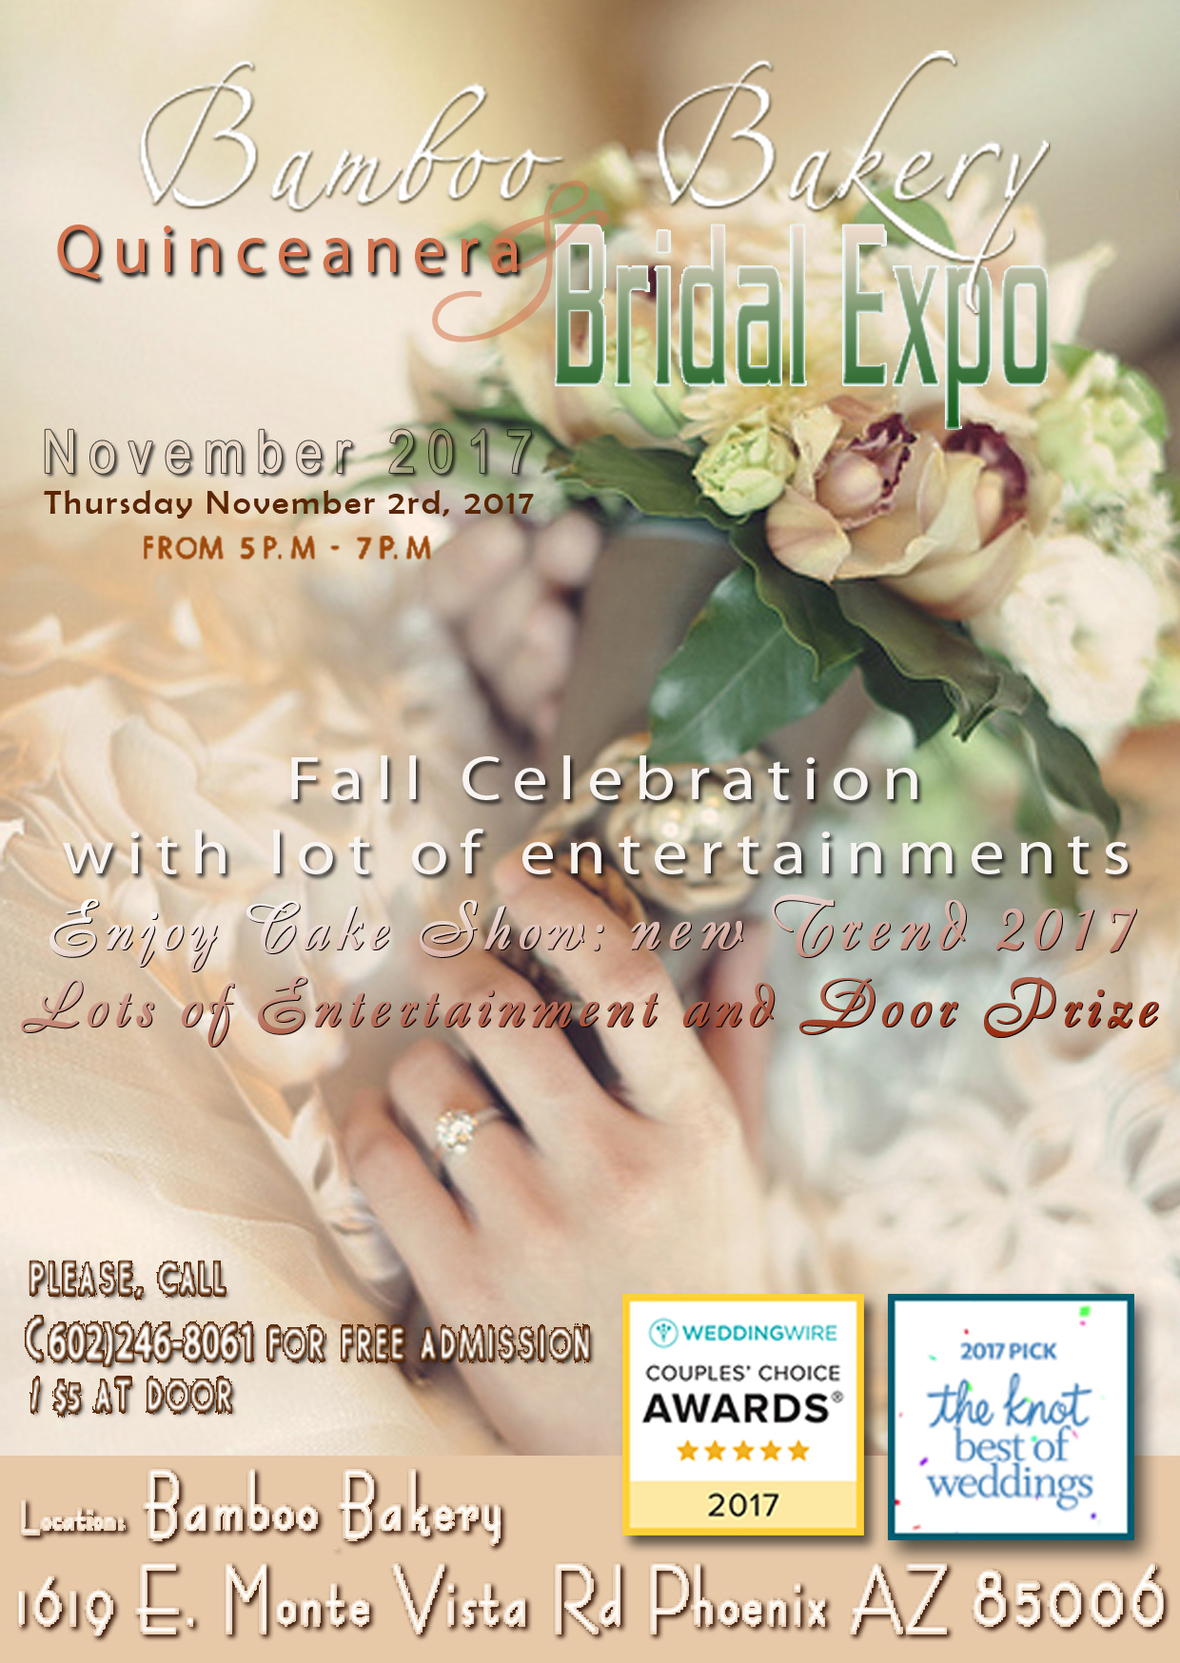 Celebrate Fall with Quinceanera & Wedding EXPO: November 2nd